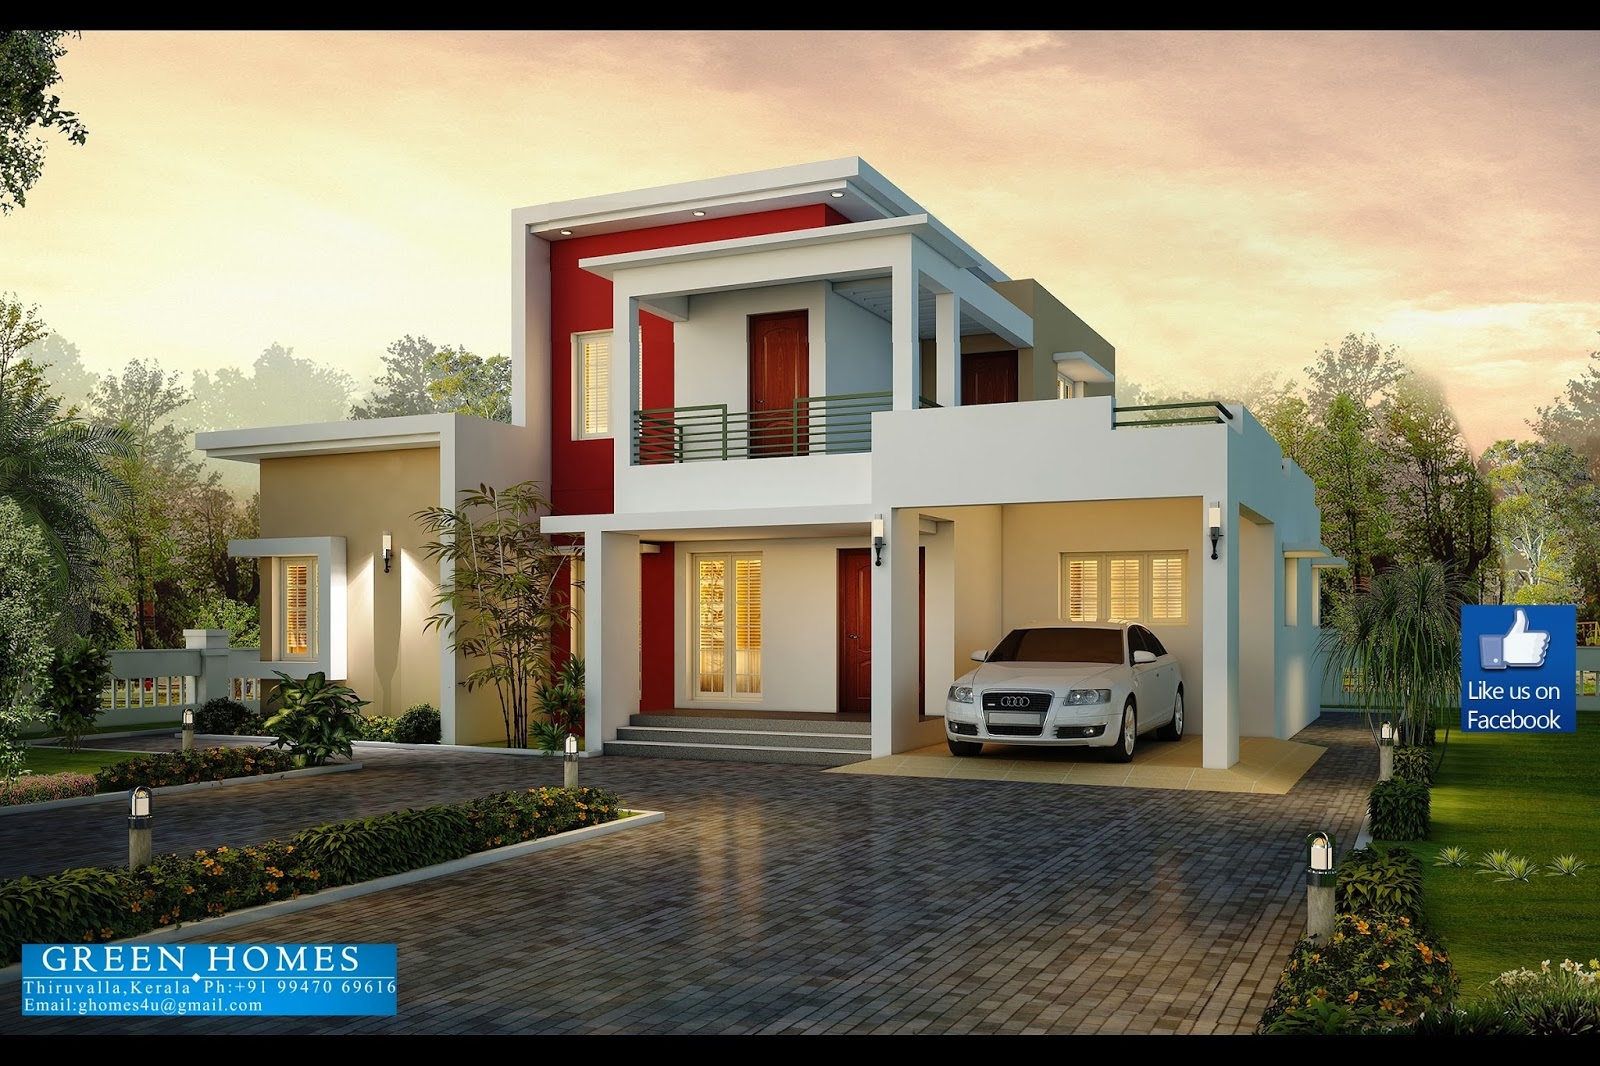 Green homes awesome 3 bedroom modern house design for 3 bedroom house interior design